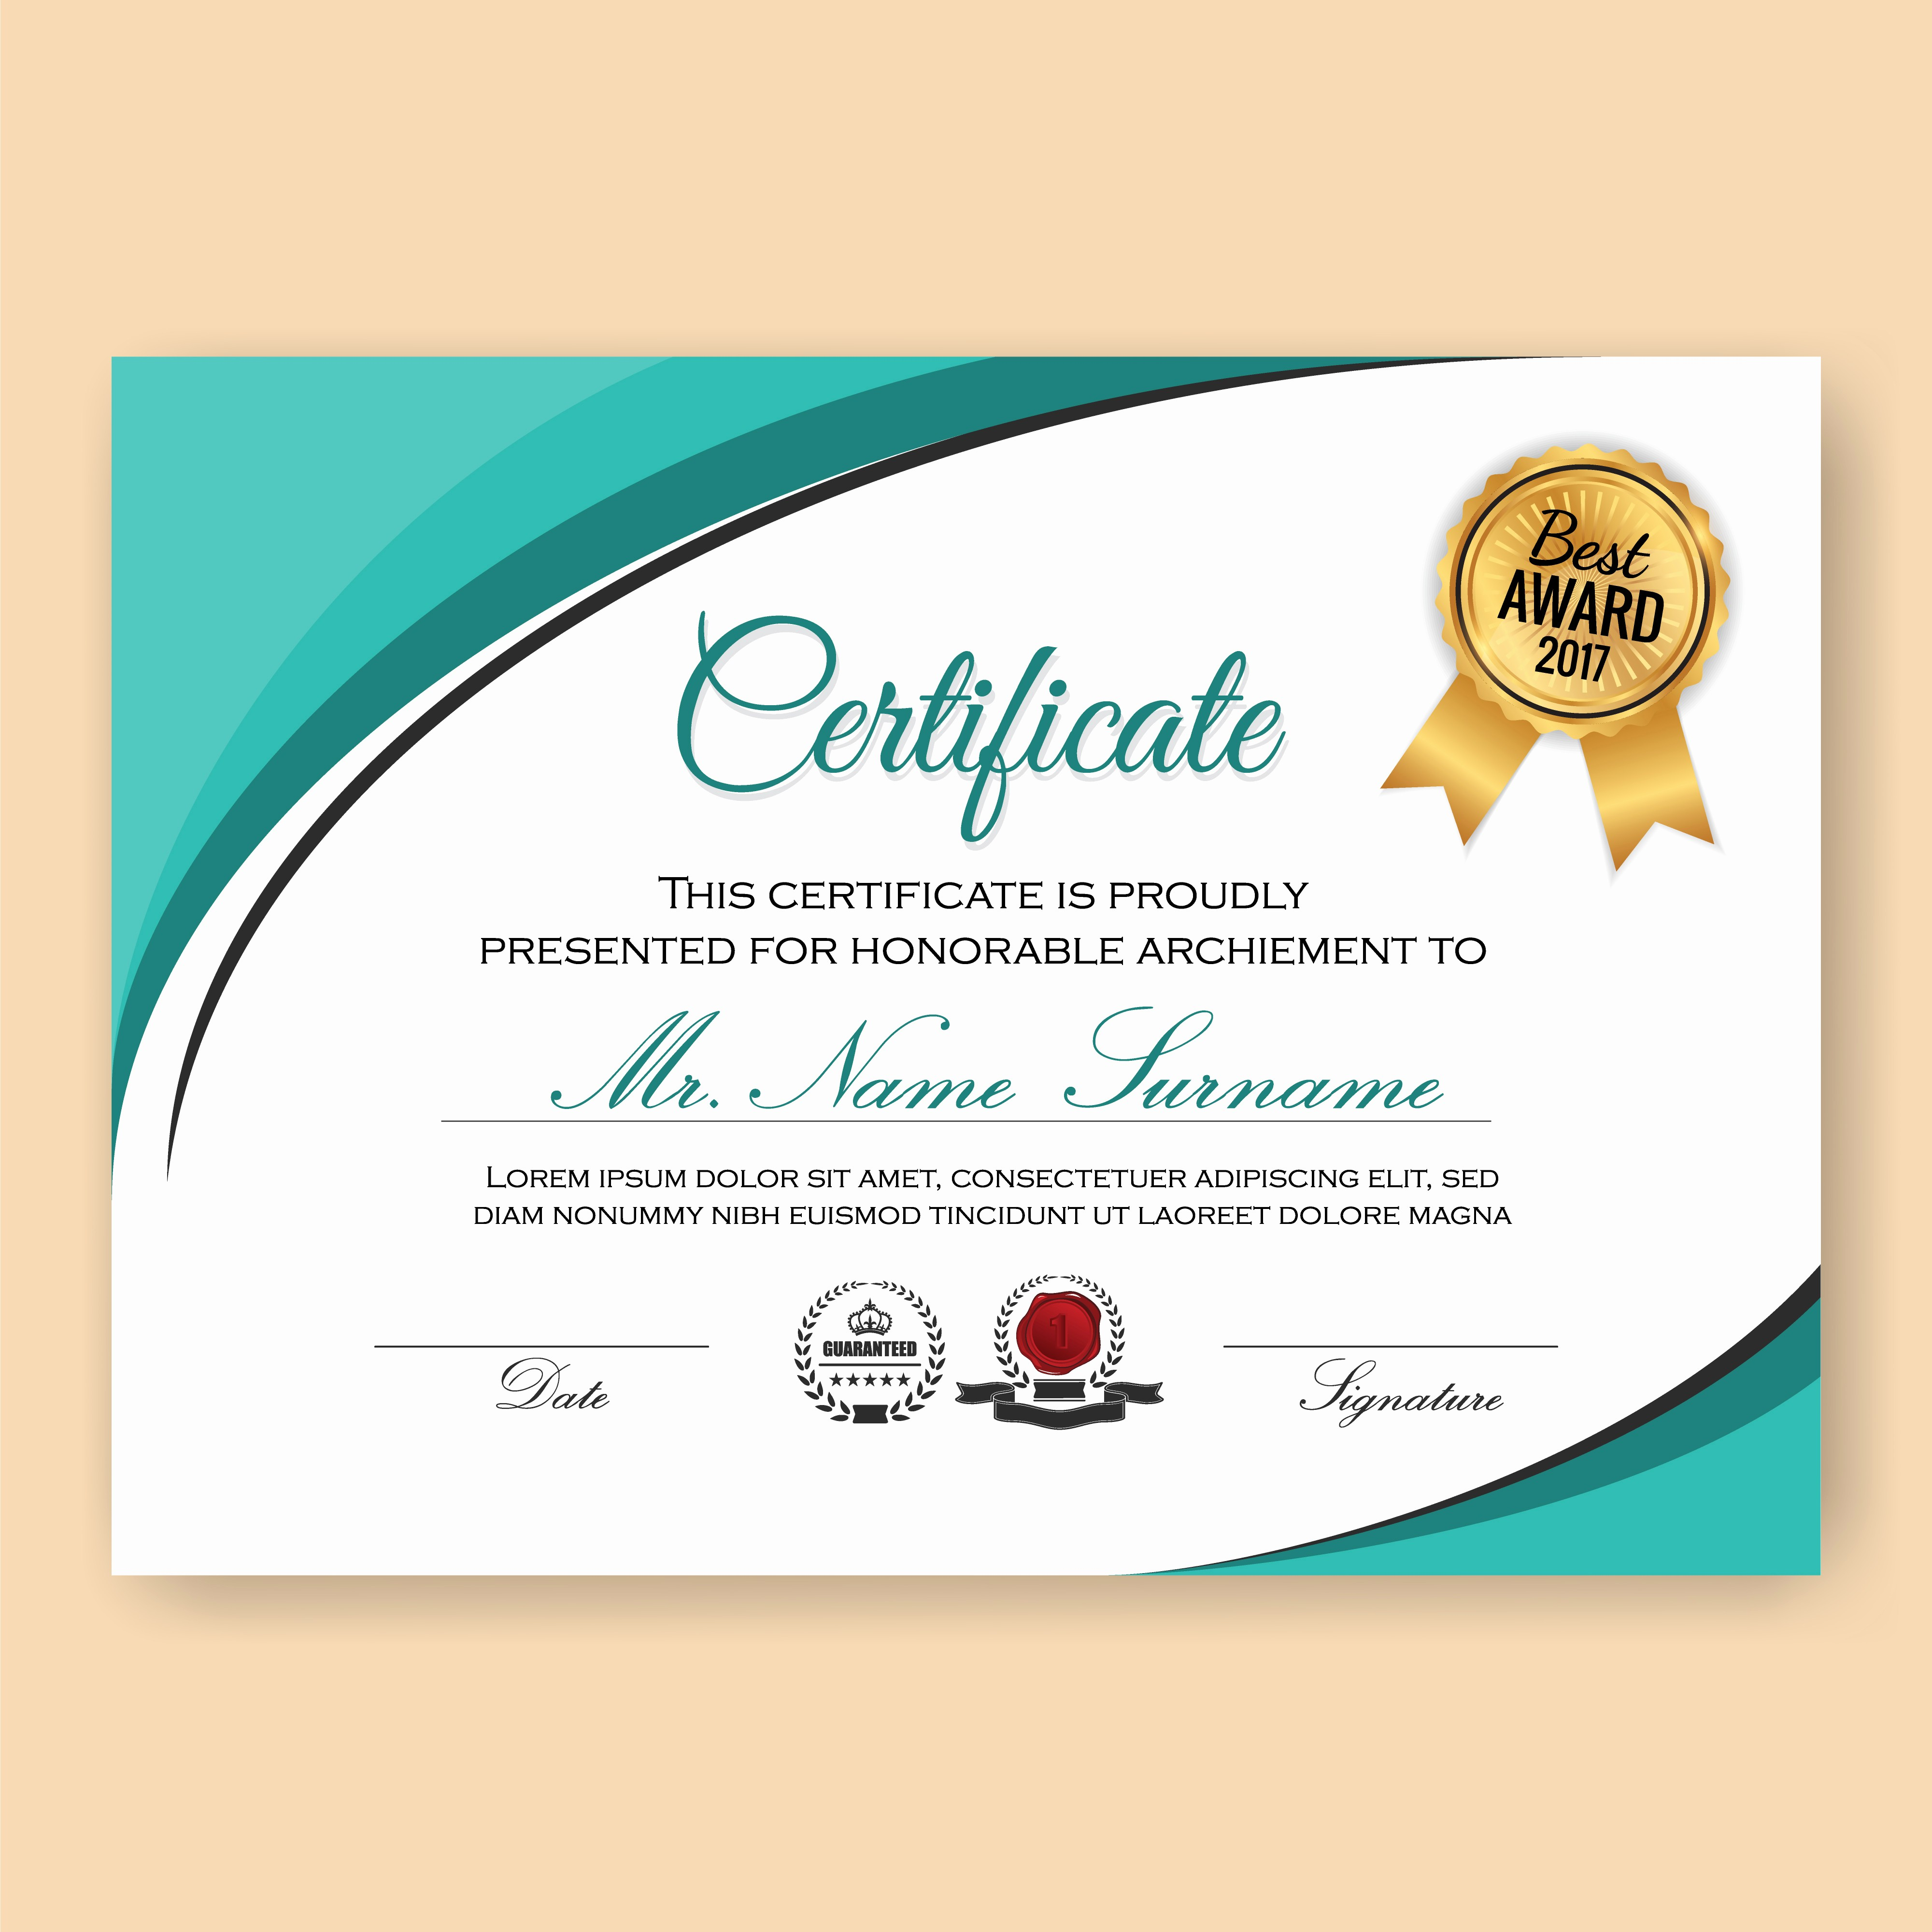 Certificate Background Design Free Download Luxury Modern Verified Certificate Background Template with